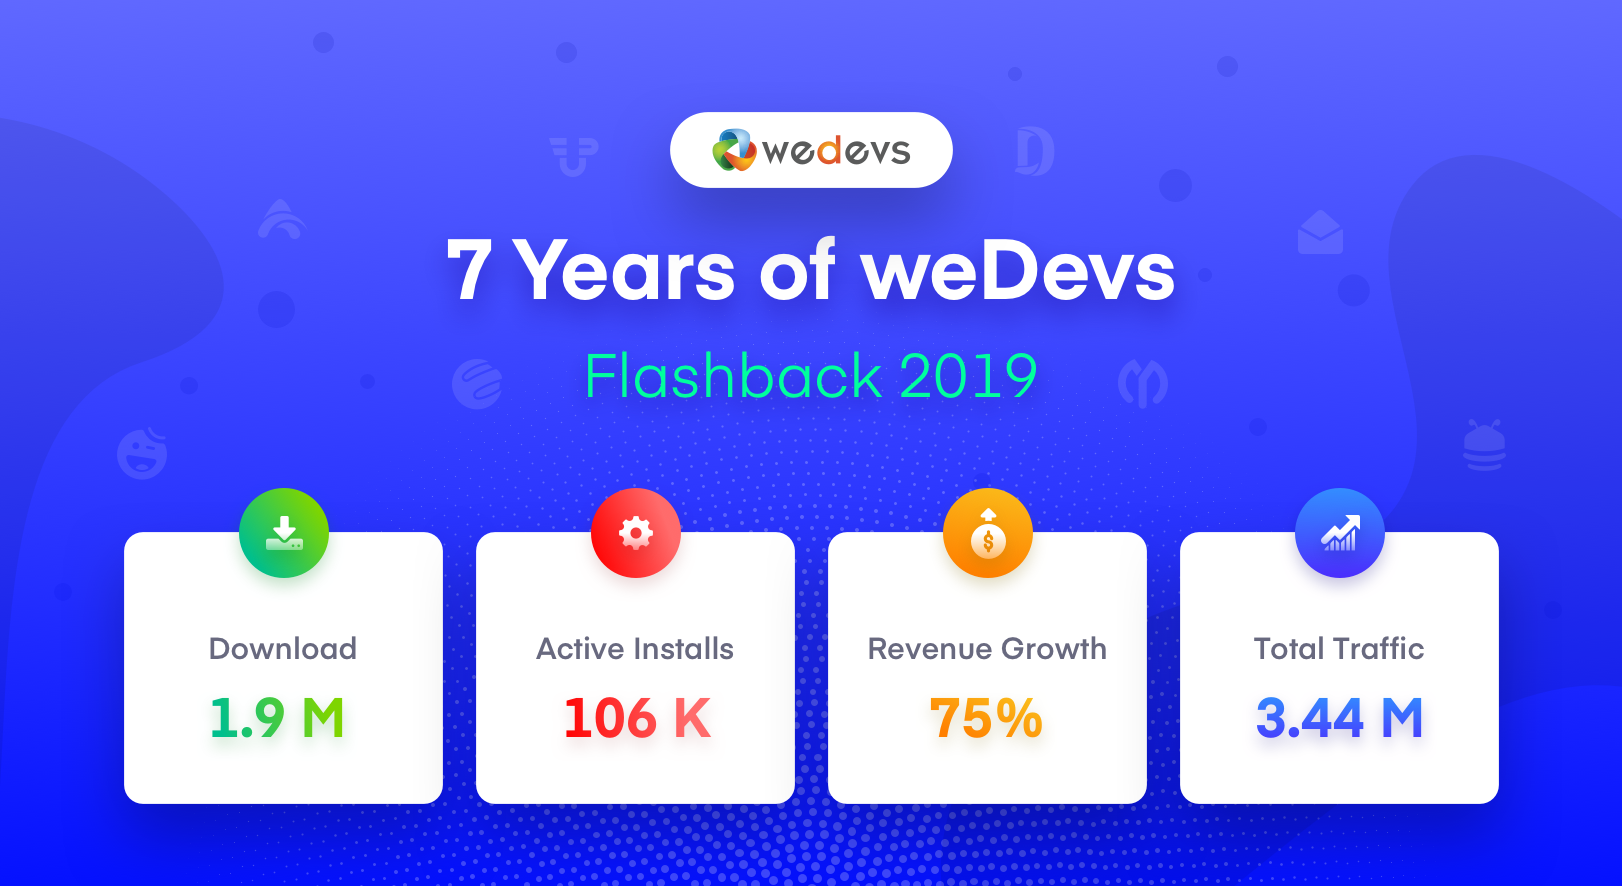 weDevs 2019 Flashback: A Year of Success, Customer Happiness & Becoming The WordPress Brand!